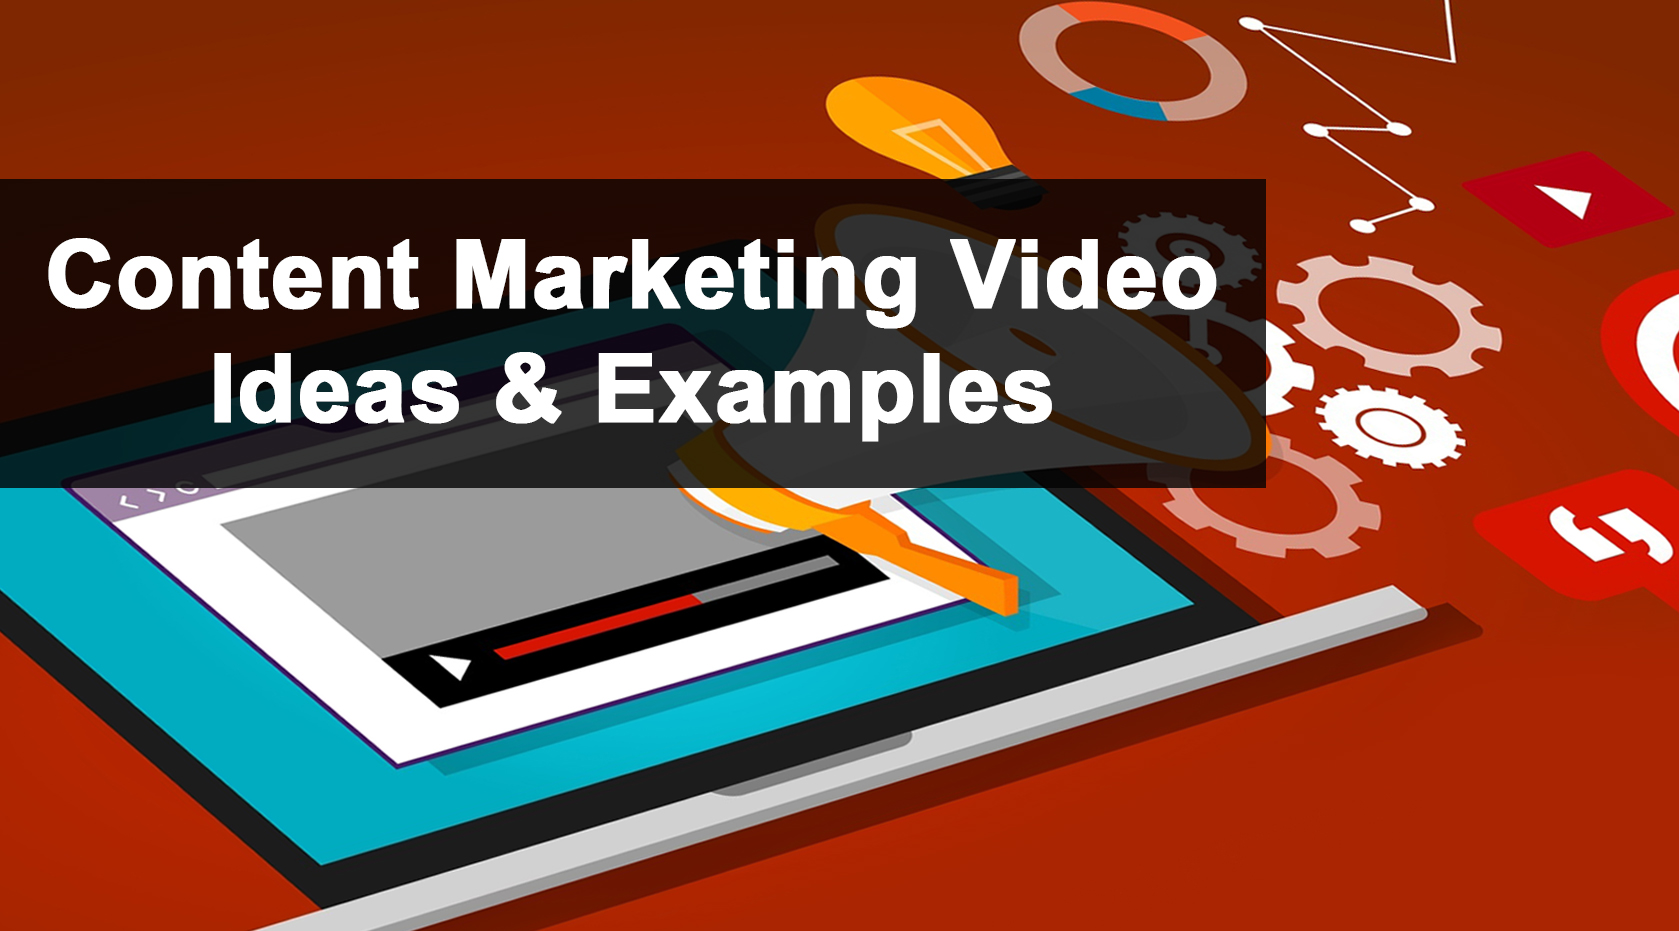 Content Marketing Video Ideas & Examples | ContentTools